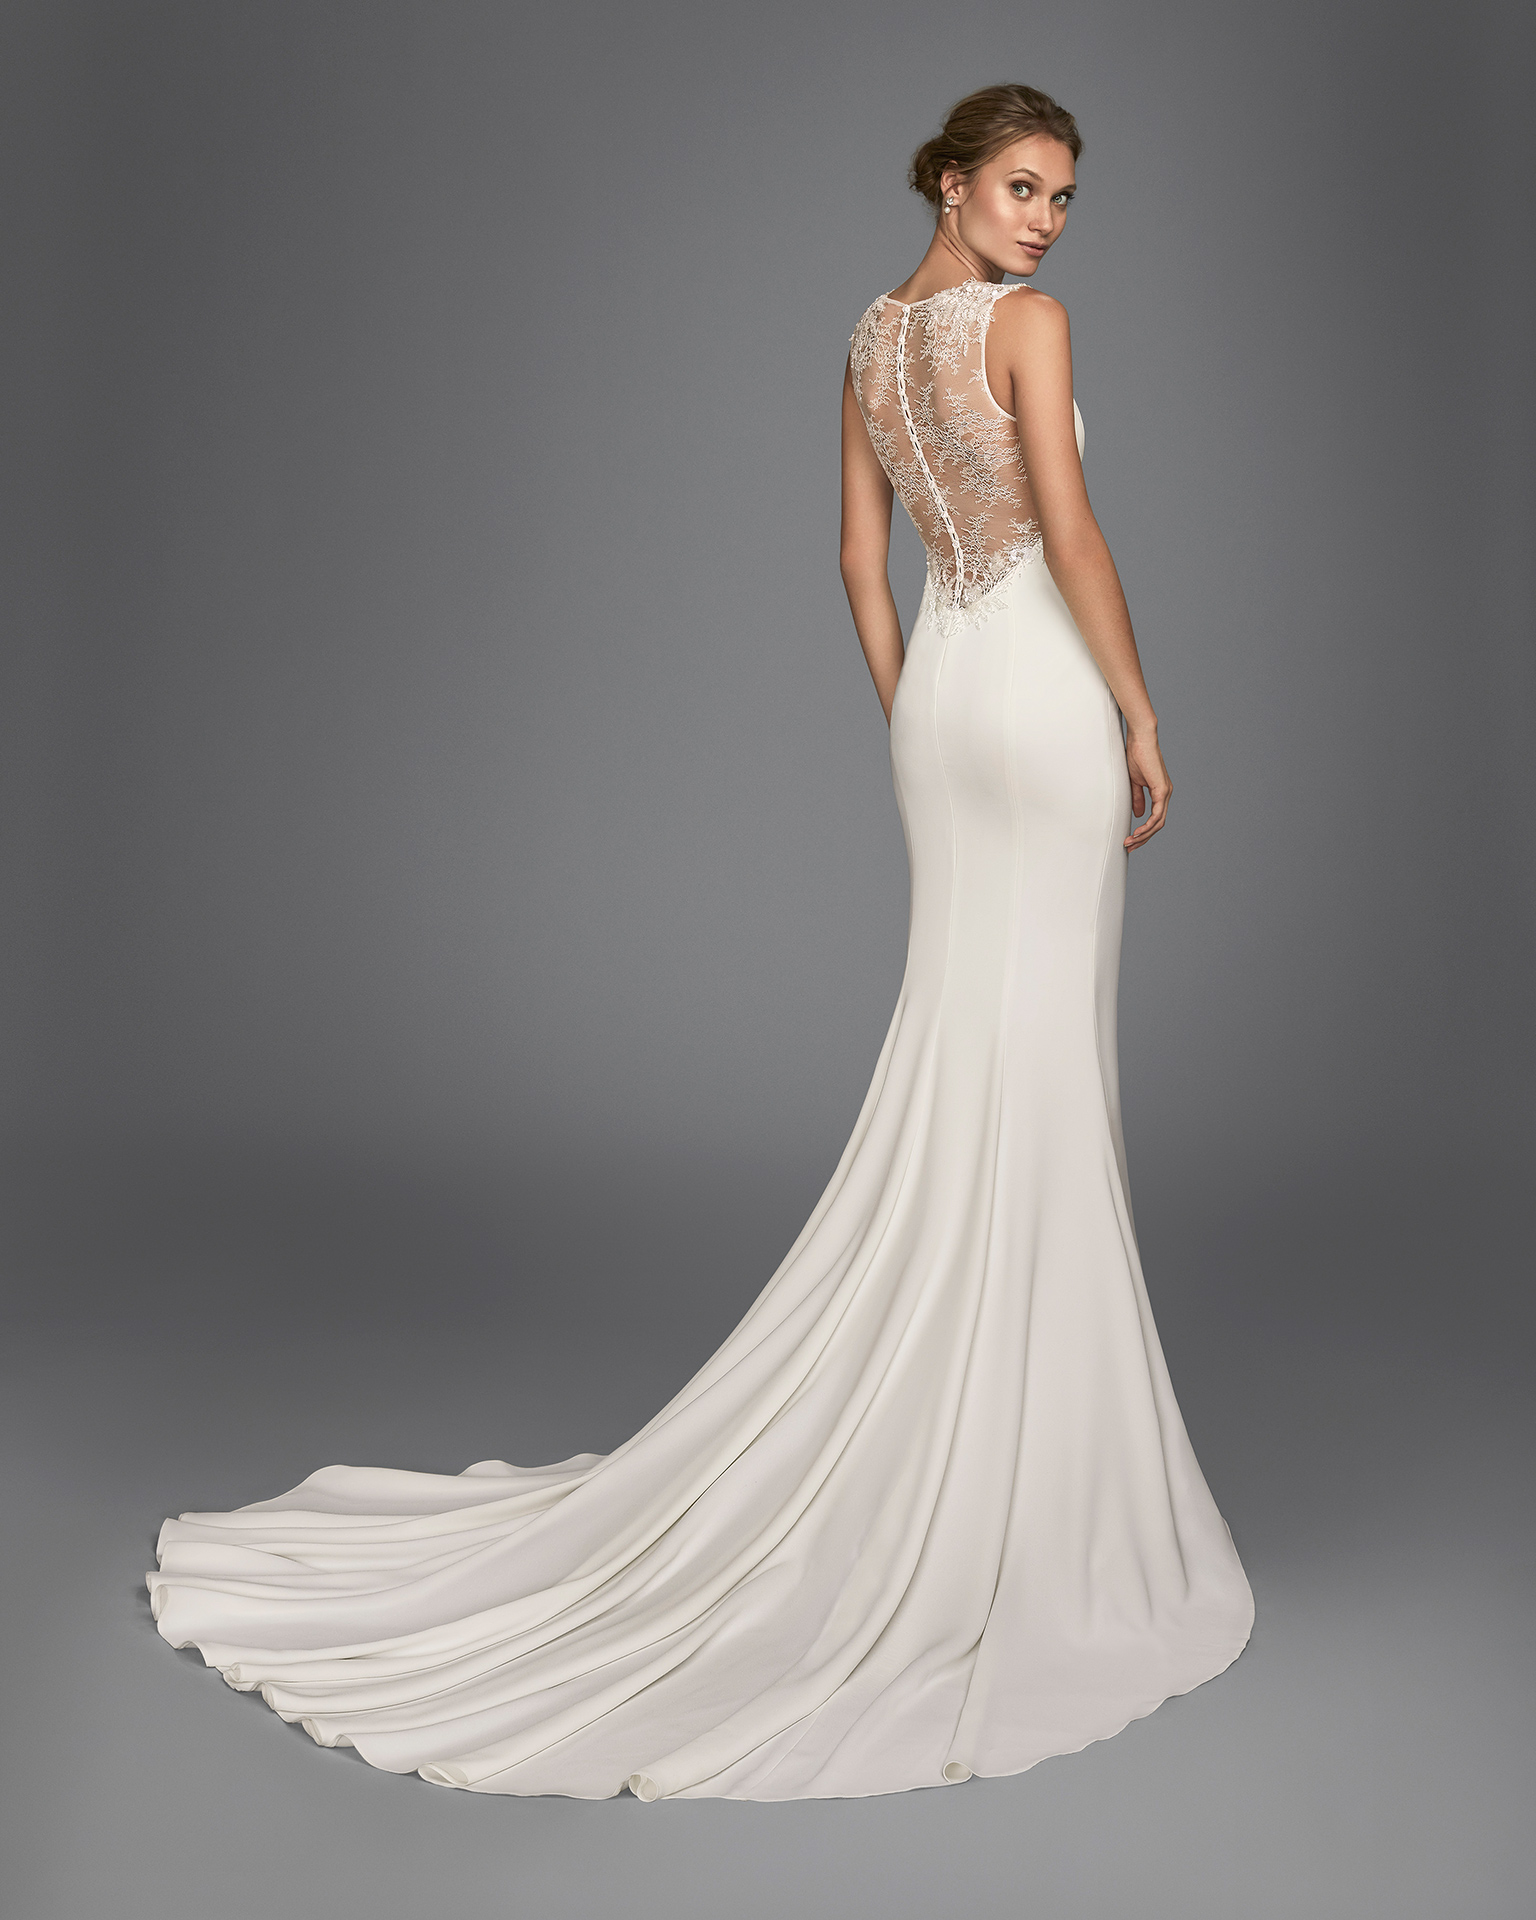 Mermaid-style crepe wedding dress with beaded lace back.